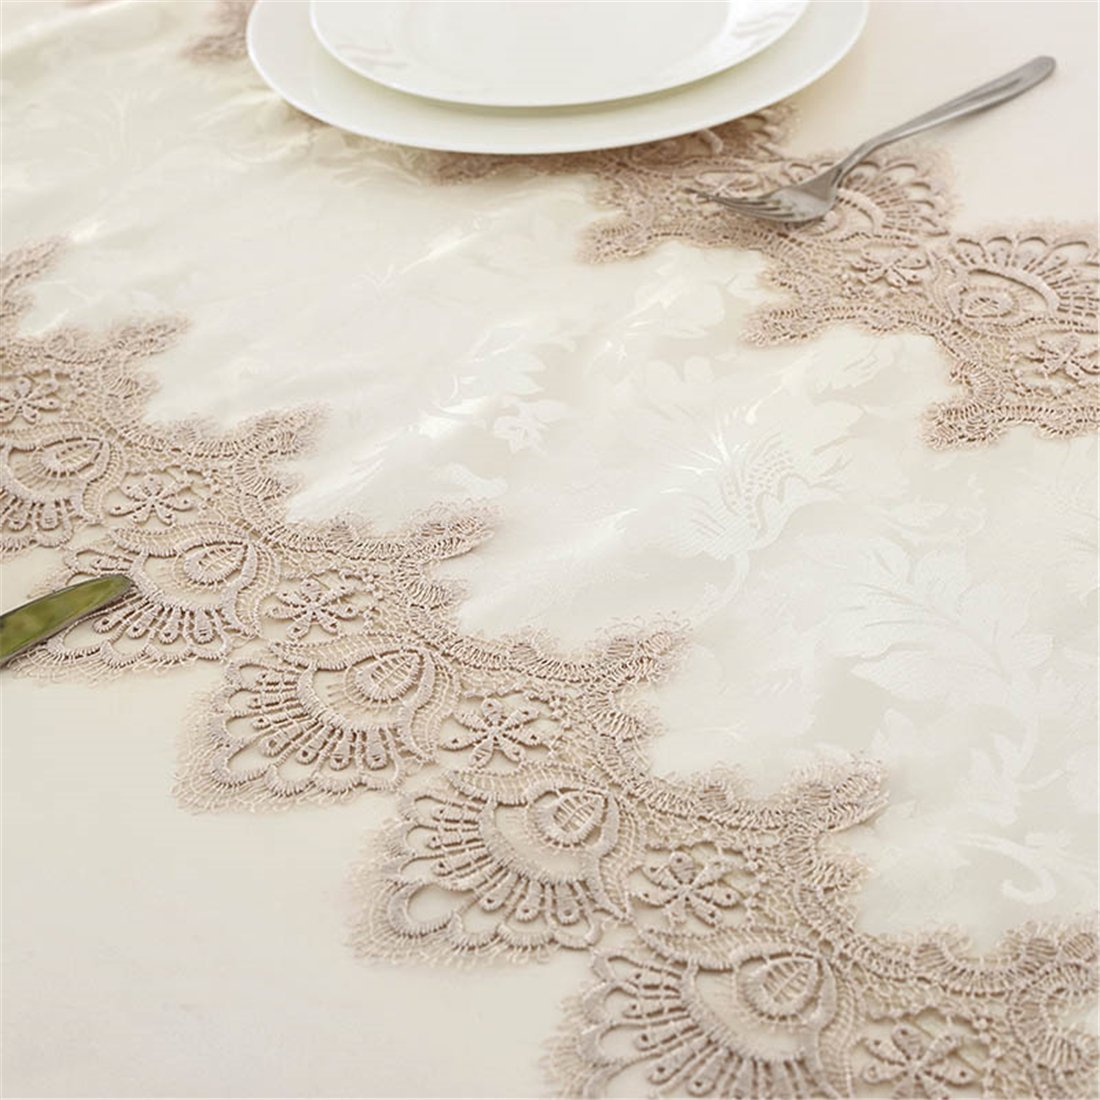 TaiXiuHome Modern Lace Floral Embroidered Indoor Outdoor Table Runner Table flags for Country Rustic Party Wedding Home Decoration 16 x 48 inch approx by TaiXiuHome (Image #3)